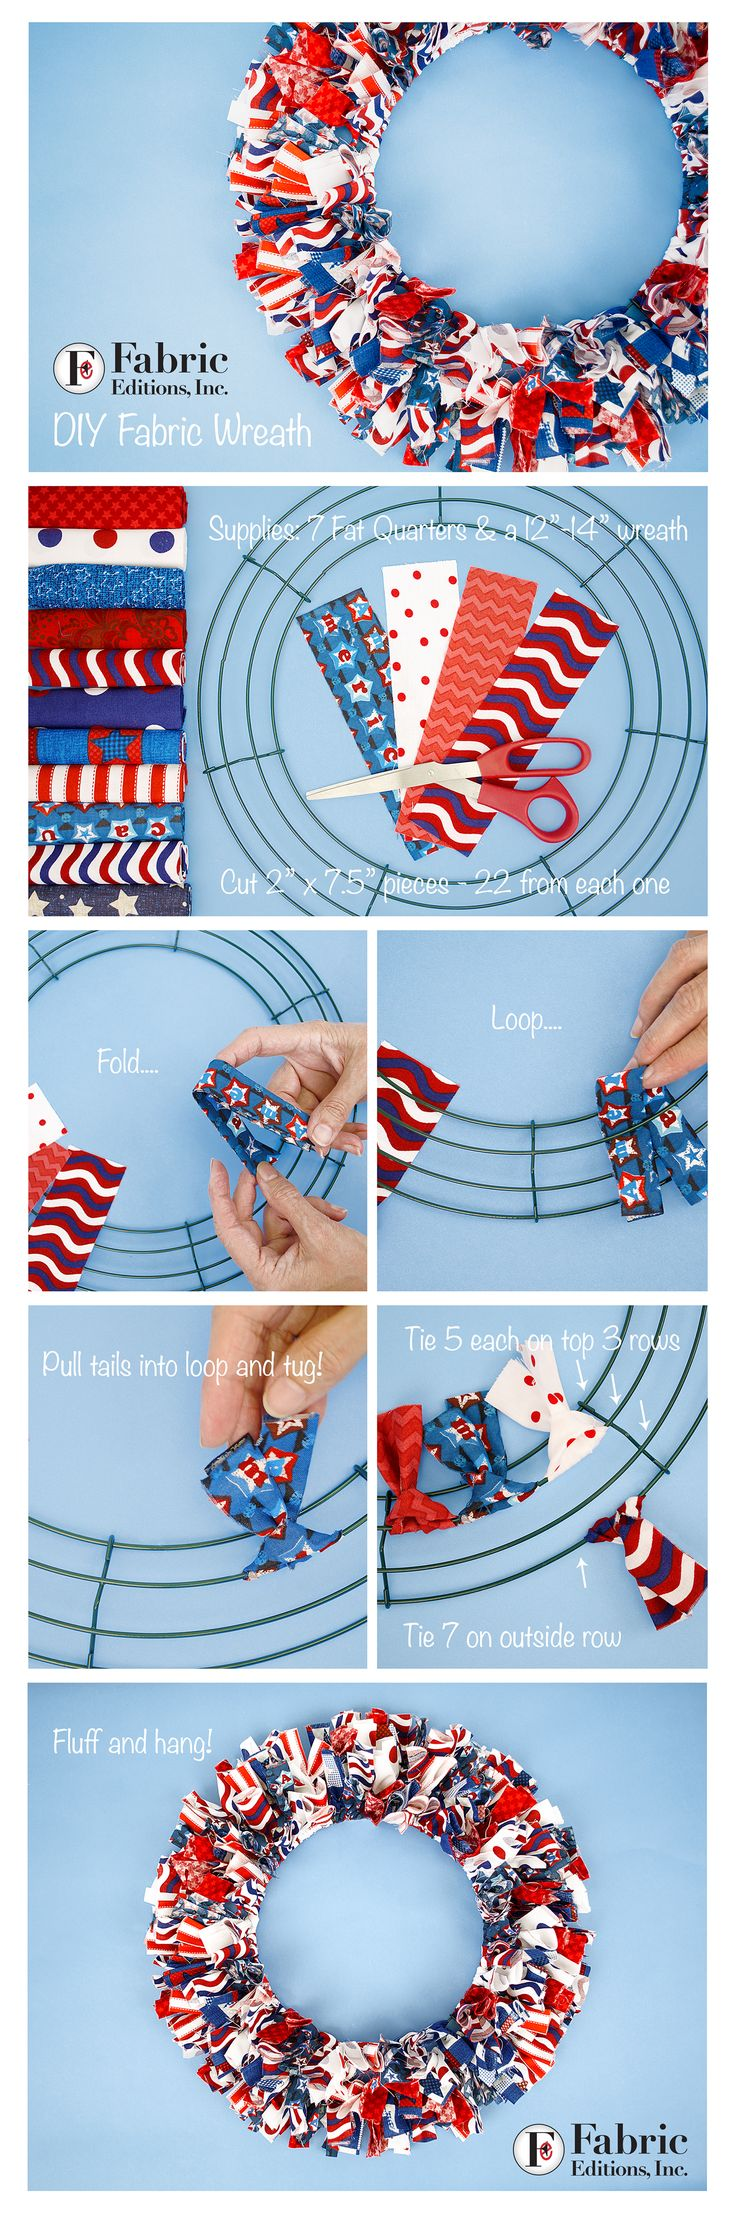 243 best Crafts | Easy & No Sew Projects images on Pinterest ...